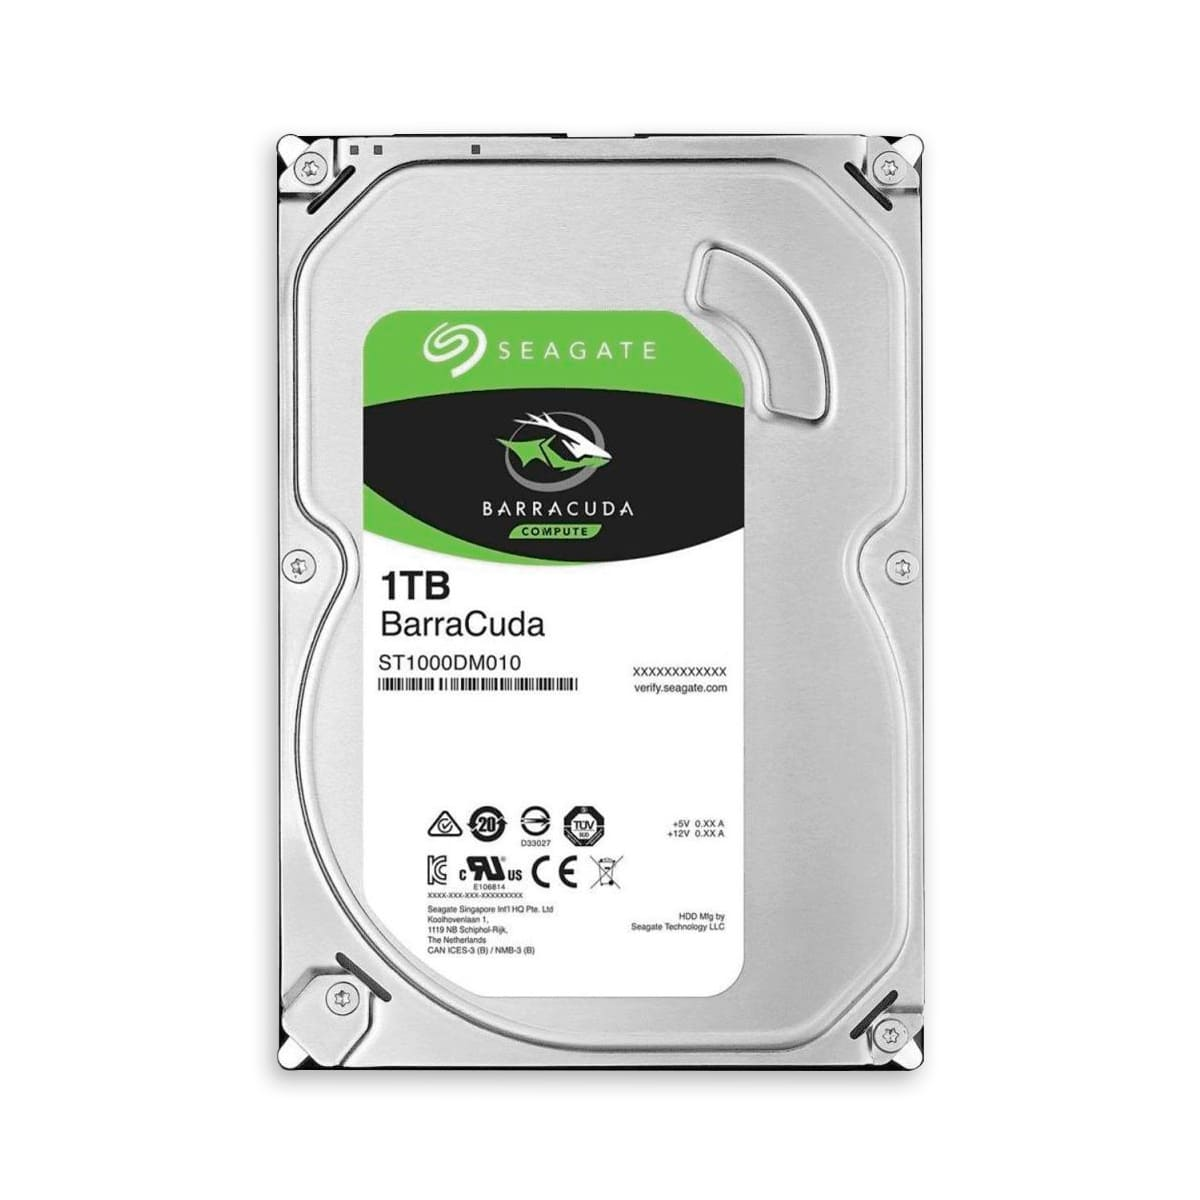 HD Disco Rígido Seagate Barracuda 1 Tb SATA 7200 RPM